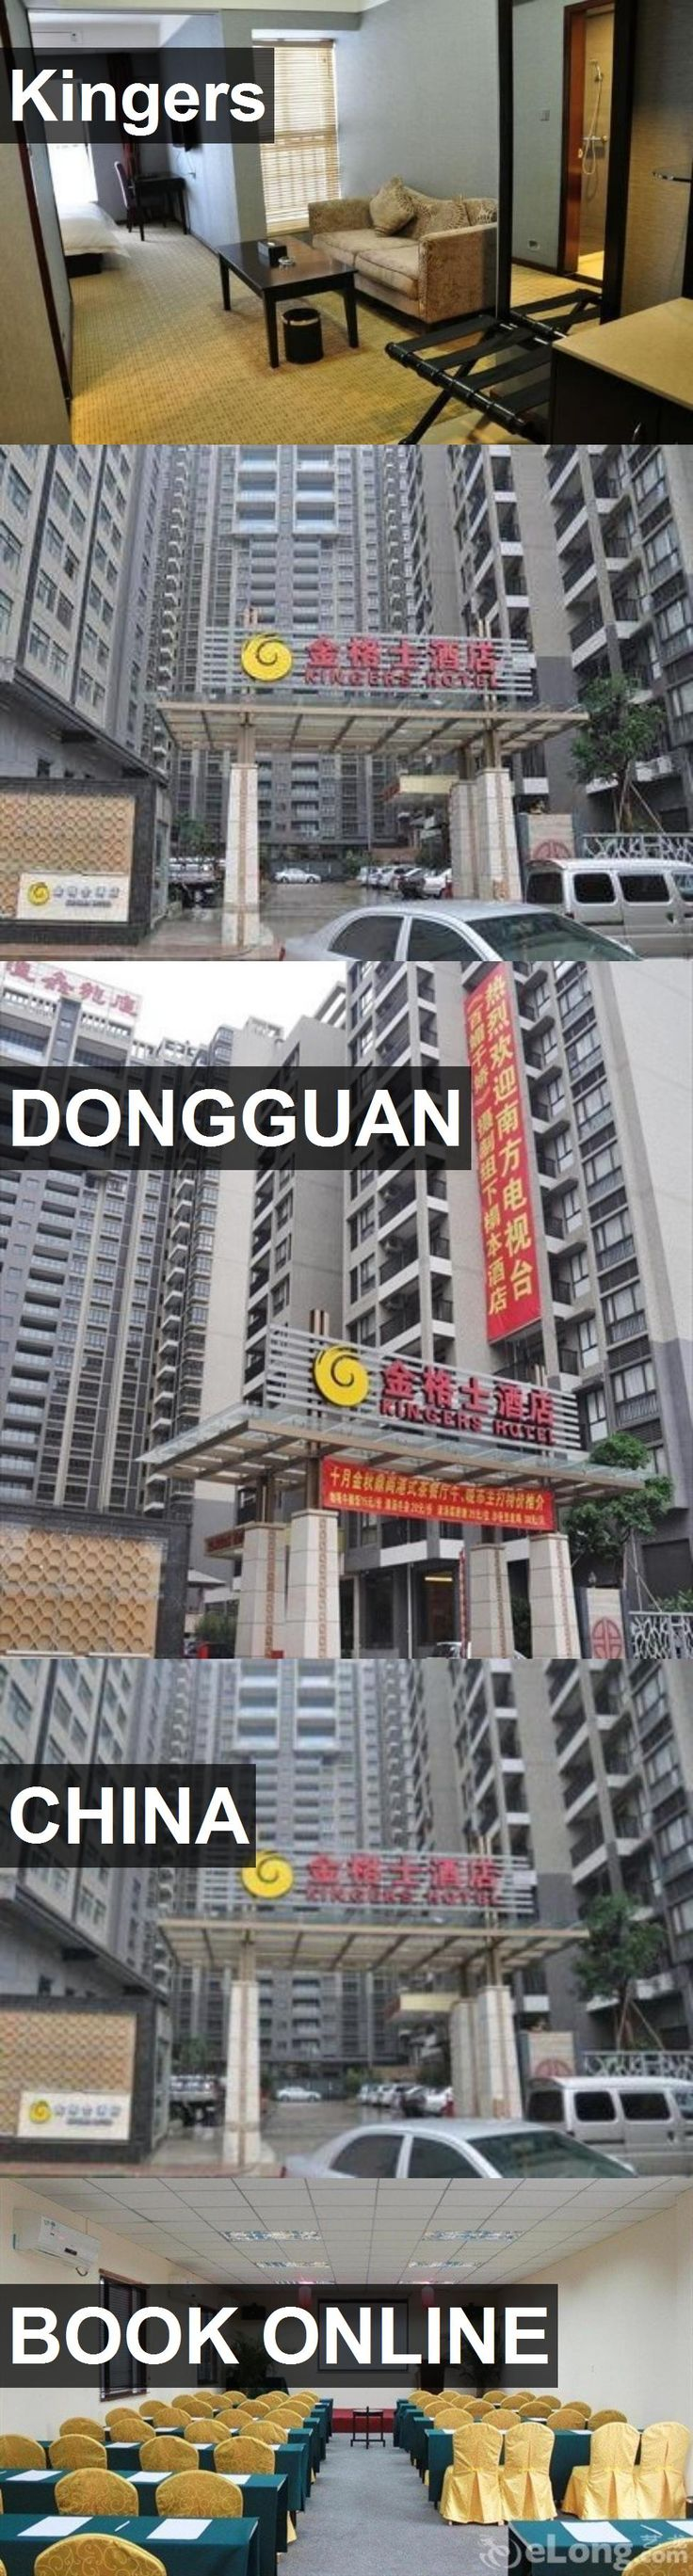 Hotel Kingers in Dongguan, China. For more information, photos, reviews and best prices please follow the link. #China #Dongguan #travel #vacation #hotel